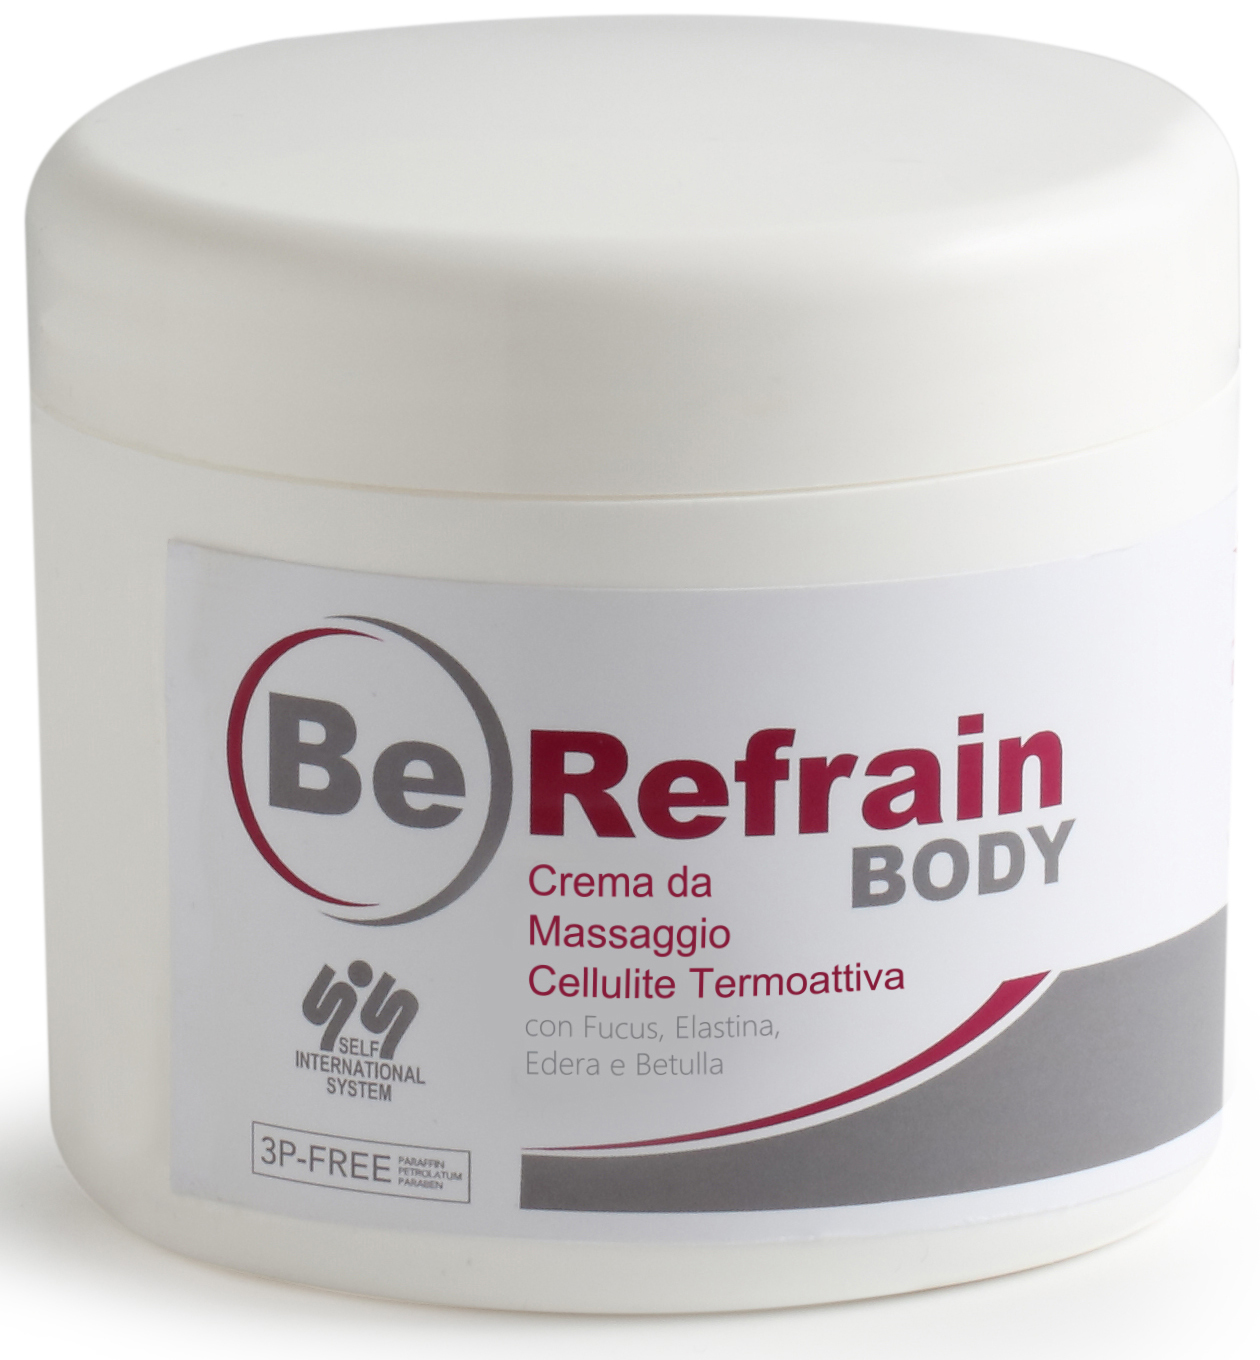 Una crema Massaggio Riducente Cellulite Be Refrain da 500ml in omaggio!